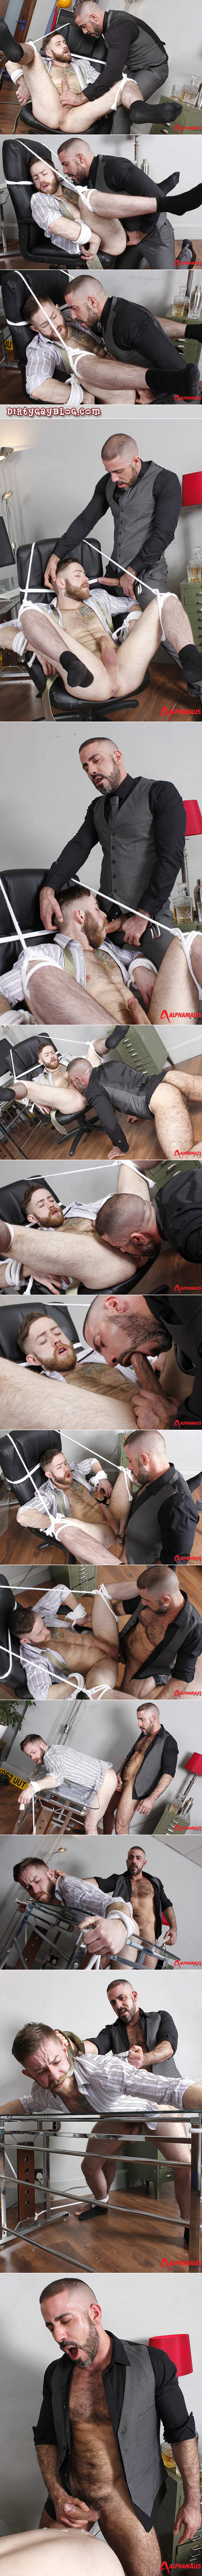 Gay bondage and forced gay sex between a businessman and his male boss in suits.